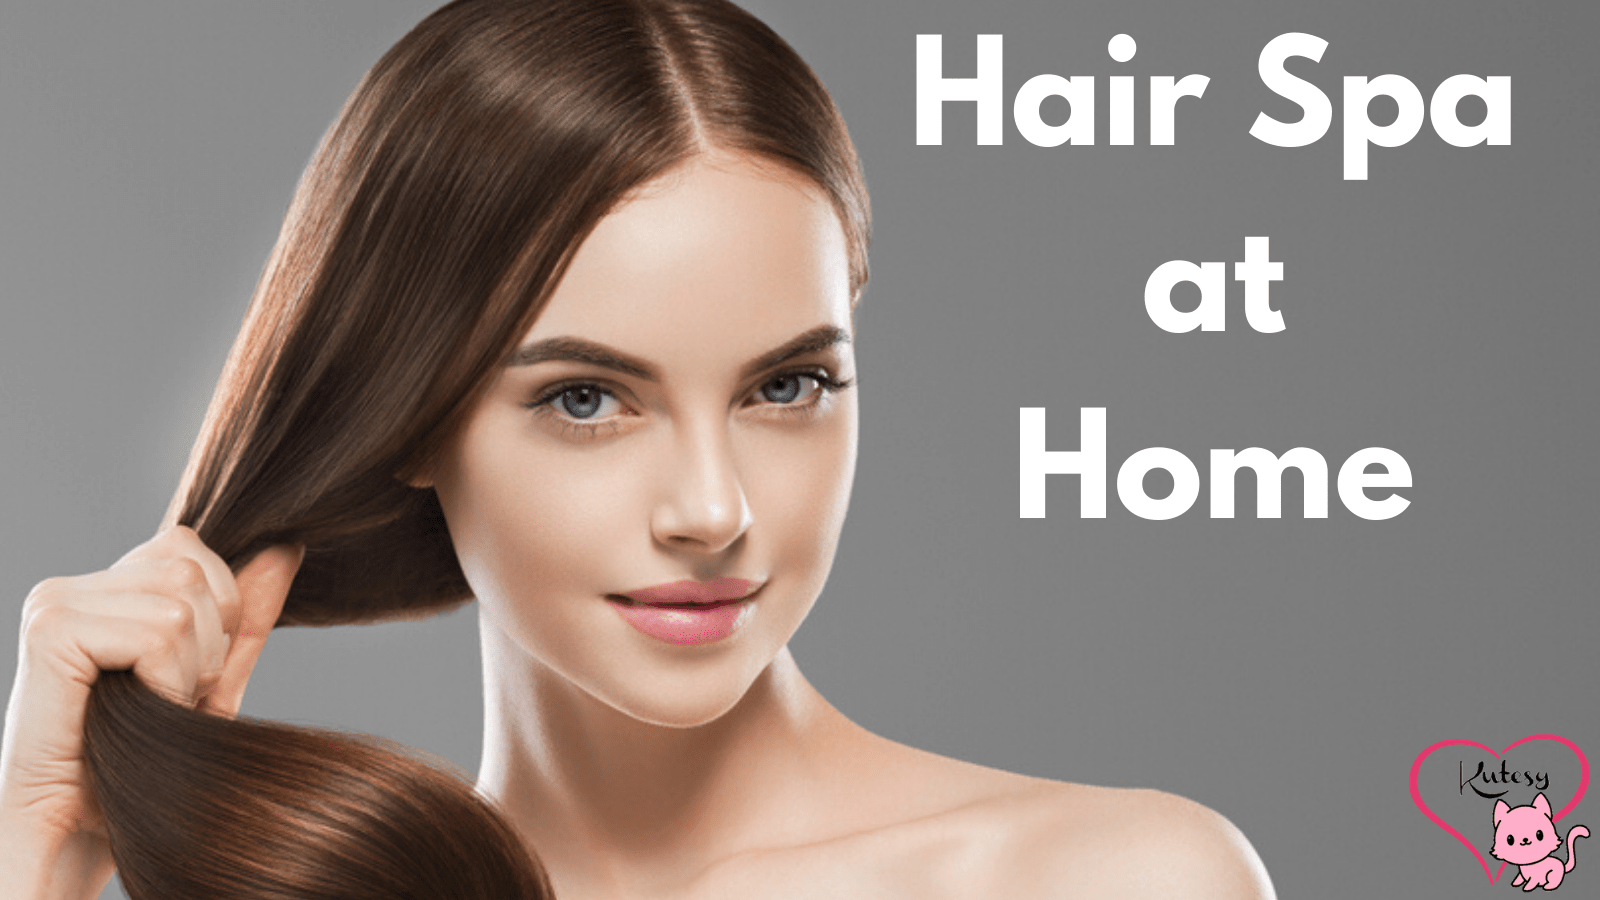 How to do hair spa at home with natural ingredients